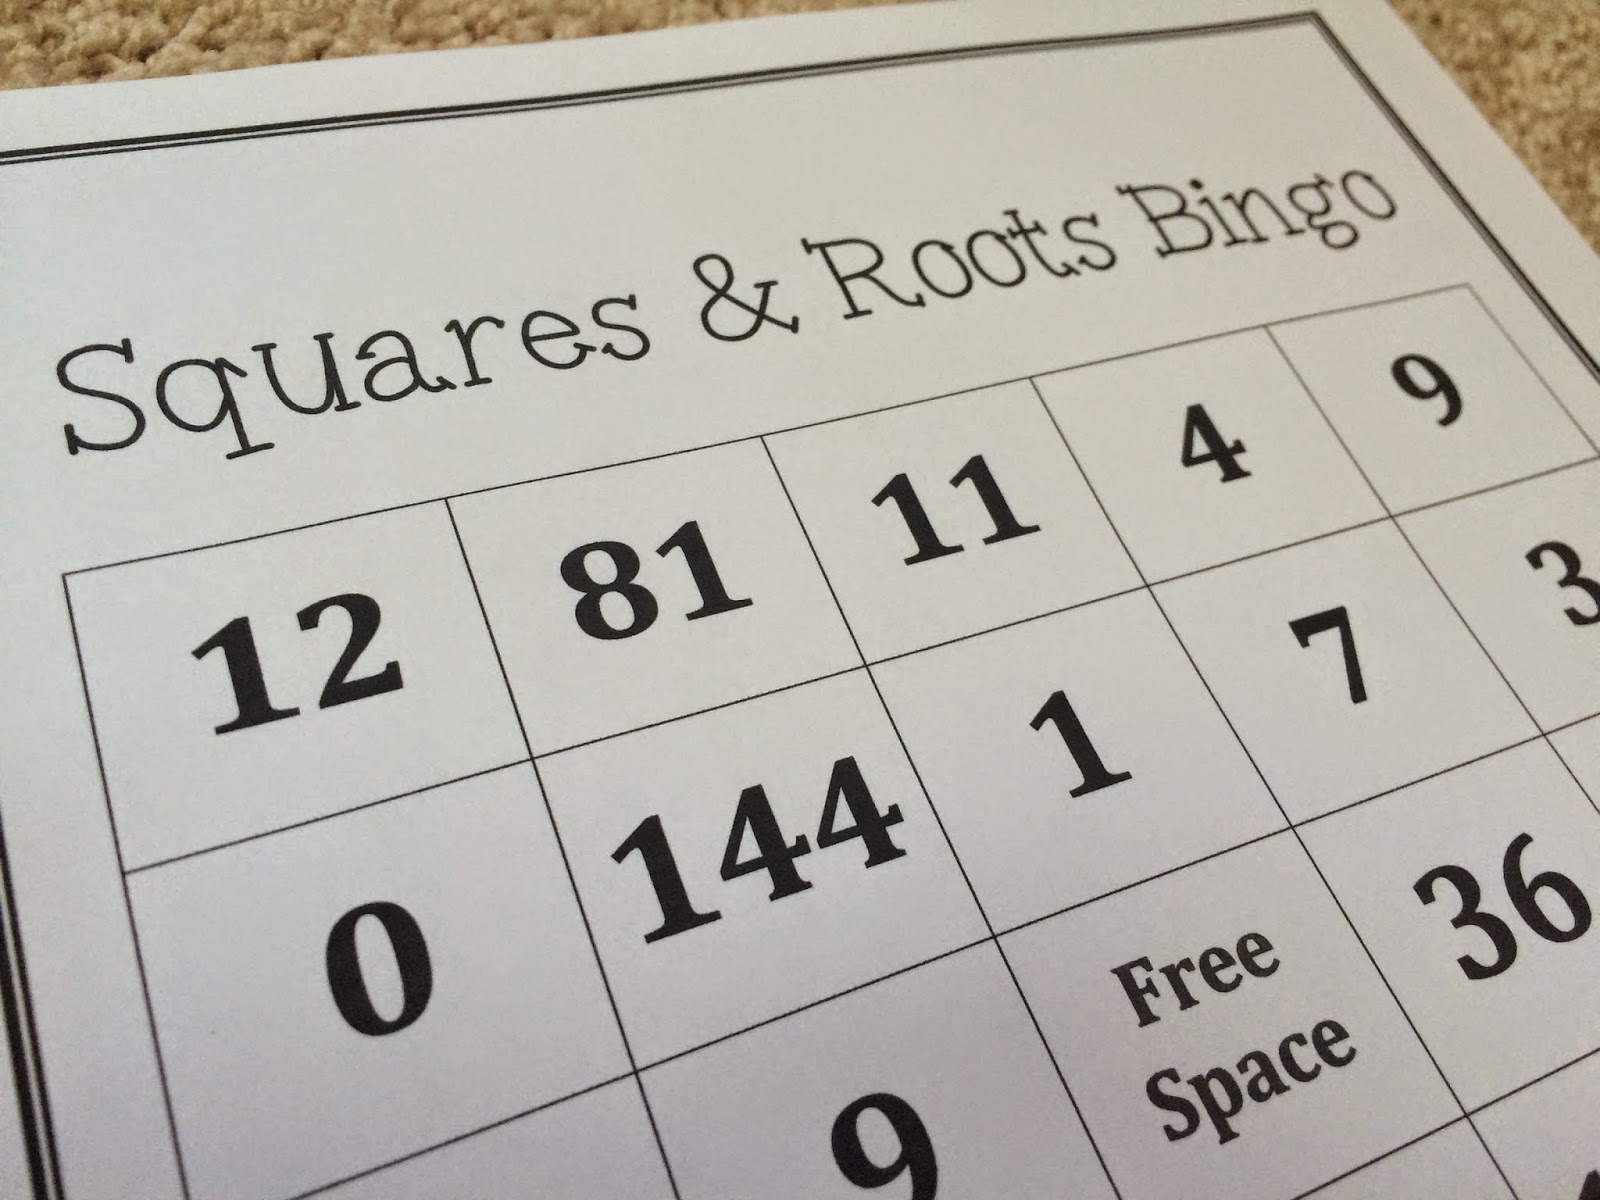 http://www.teacherspayteachers.com/Product/Squares-and-Square-Roots-Bingo-389267